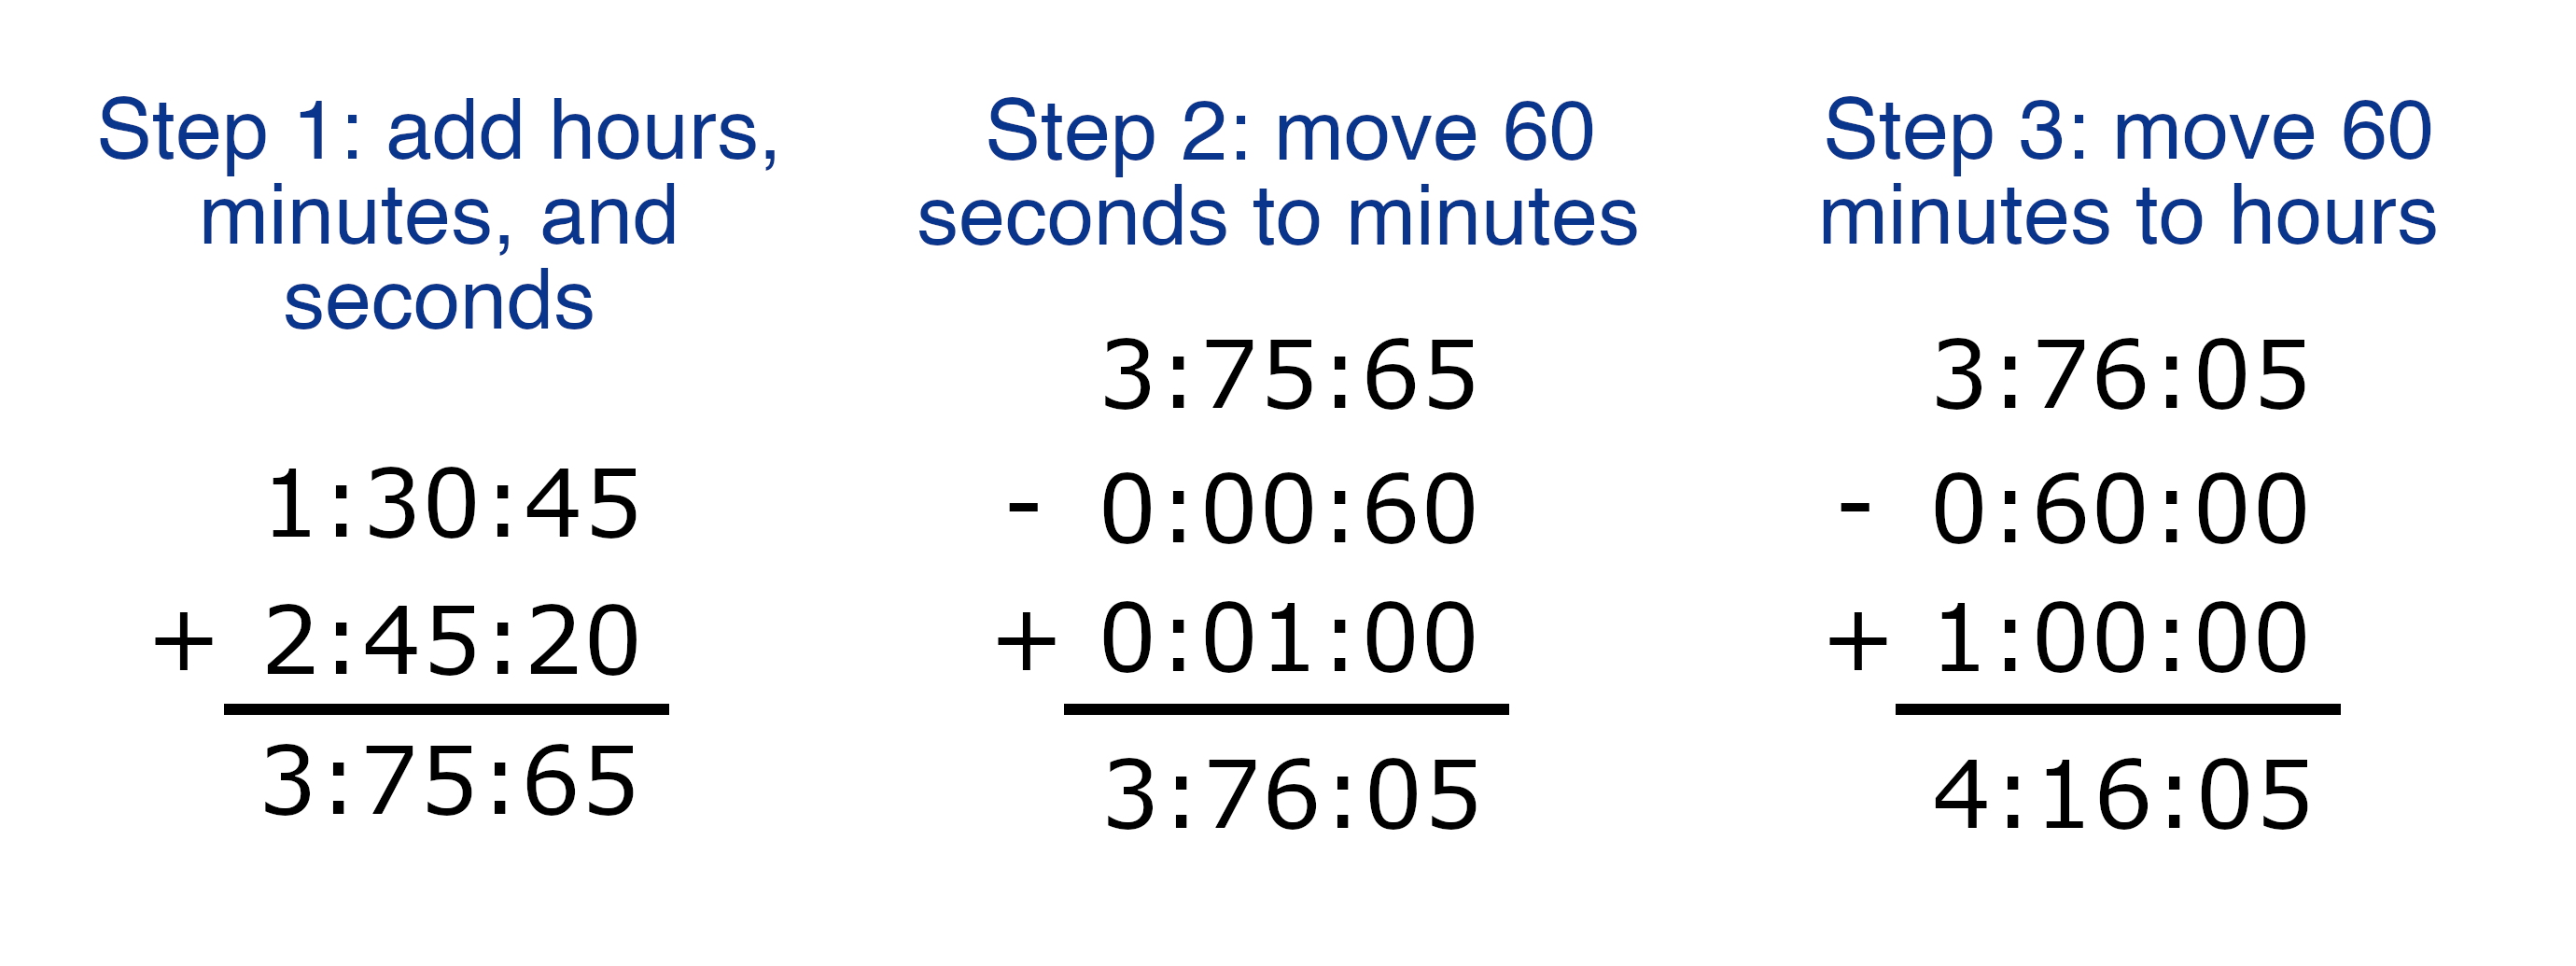 image showing the steps to add two time values together